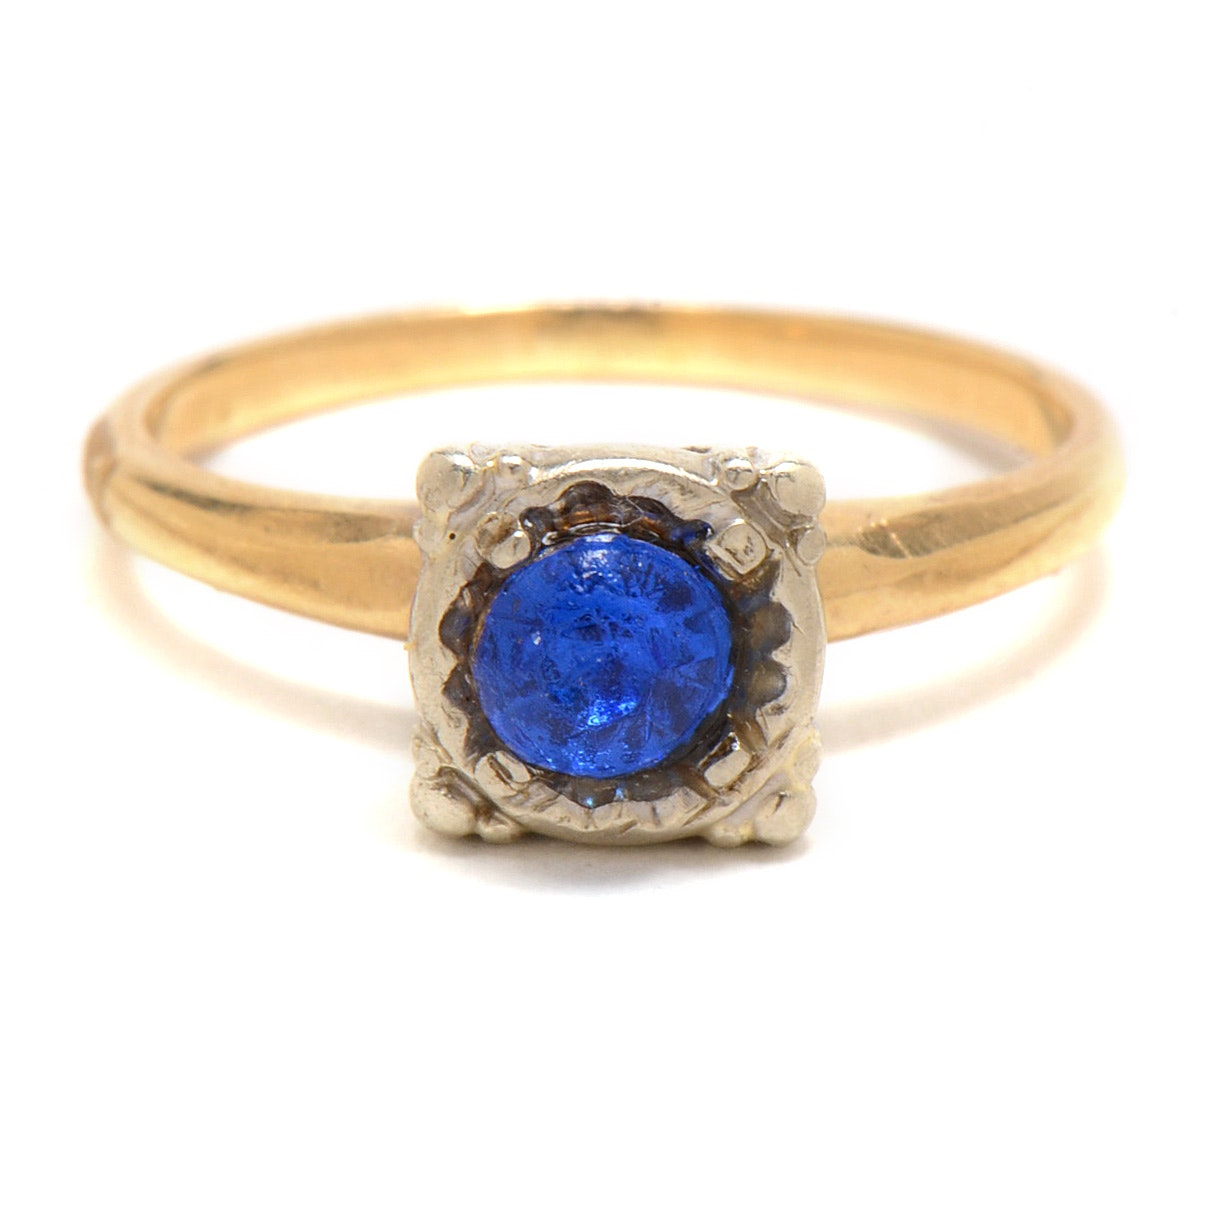 14K Yellow Gold Ring with Blue Foil Back Stone